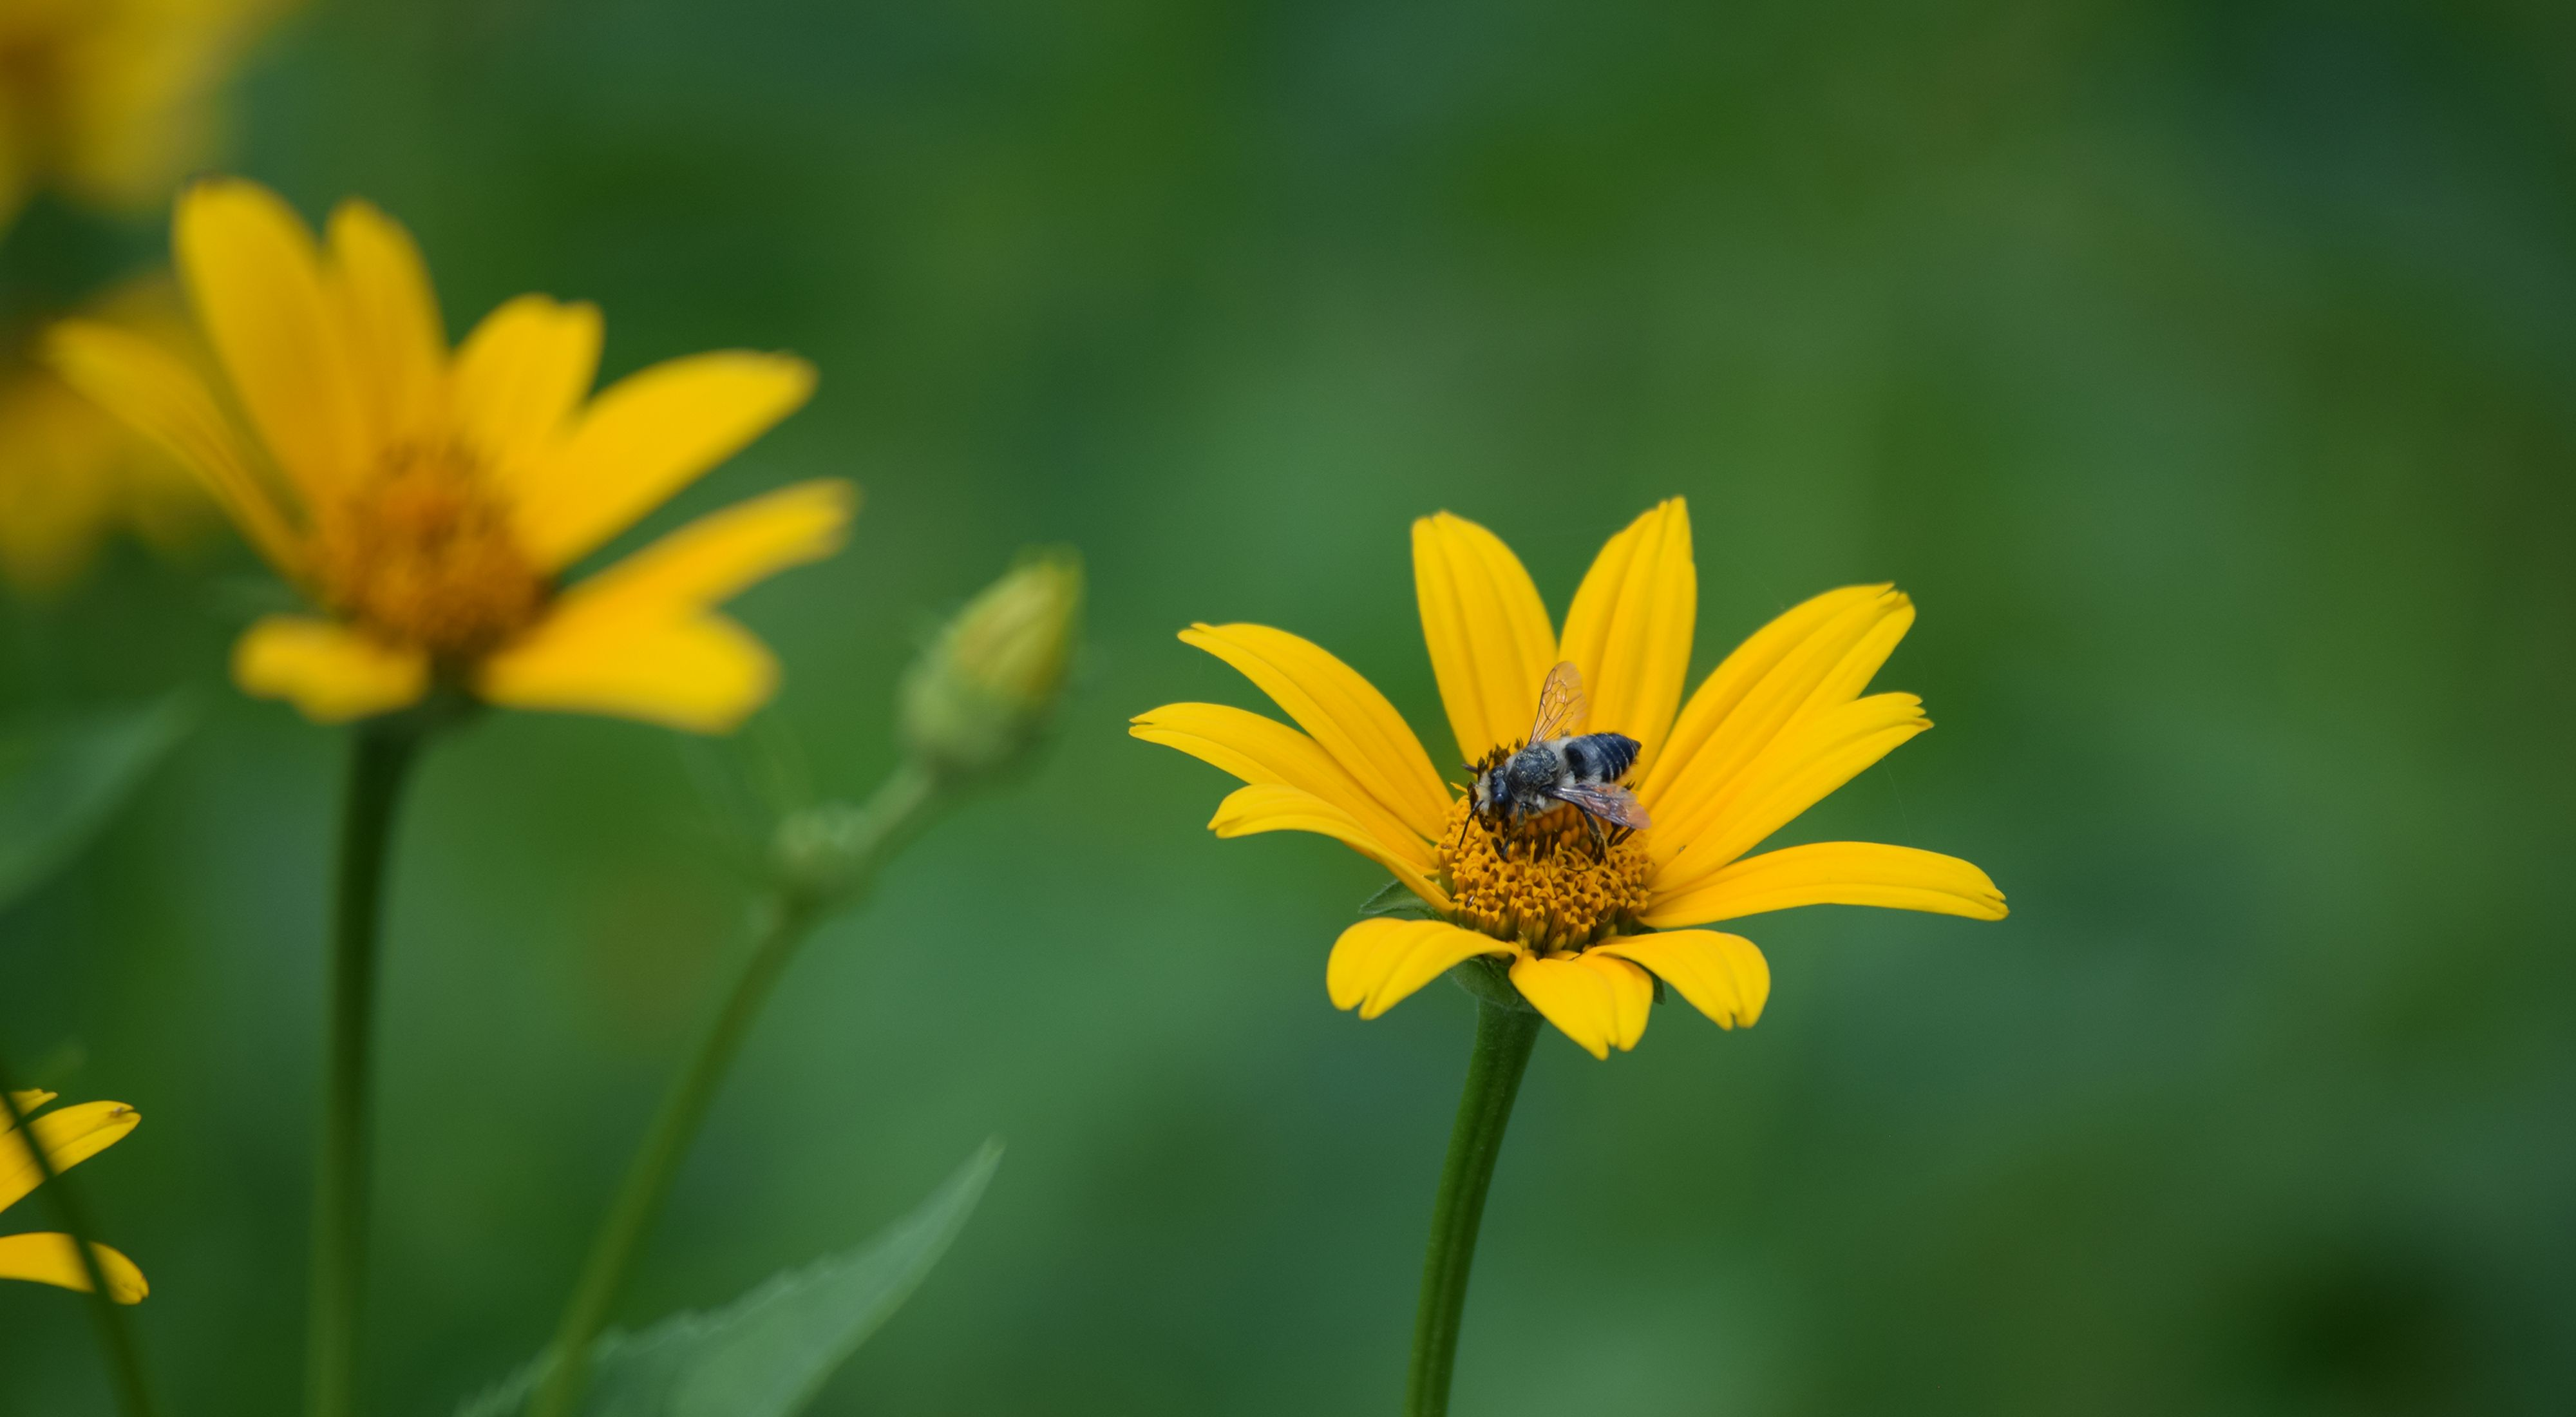 A small bee collects pollen from a yellow flower.